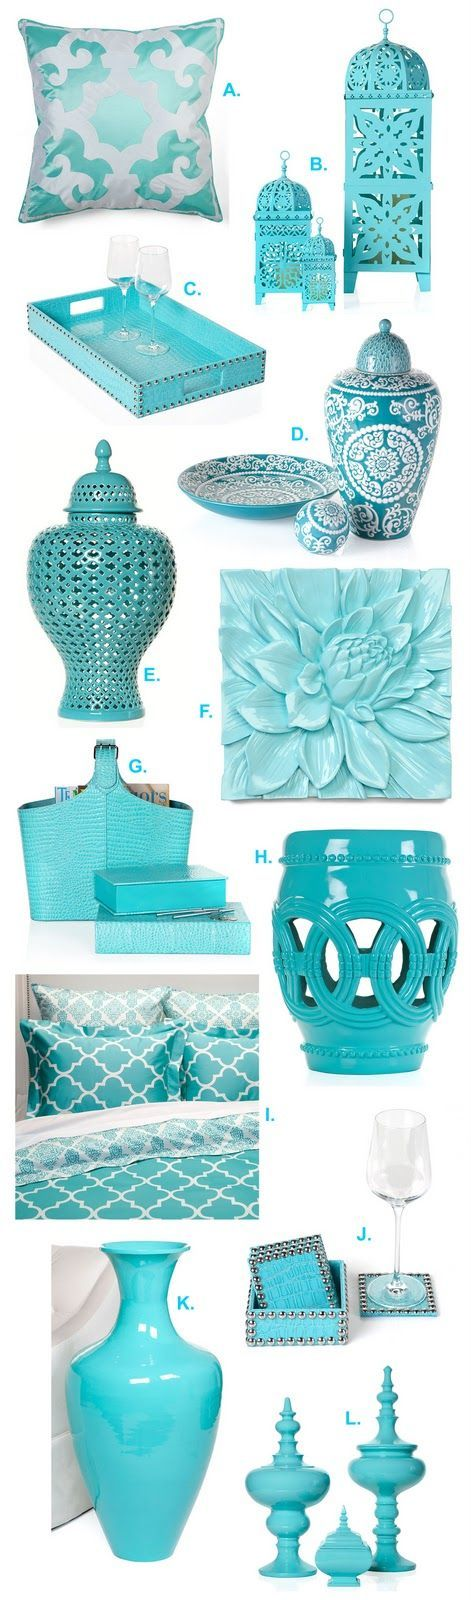 I M In Love With All Of The Aquamarine Accessories Would Be Beautiful In My Bedroom Bathroom